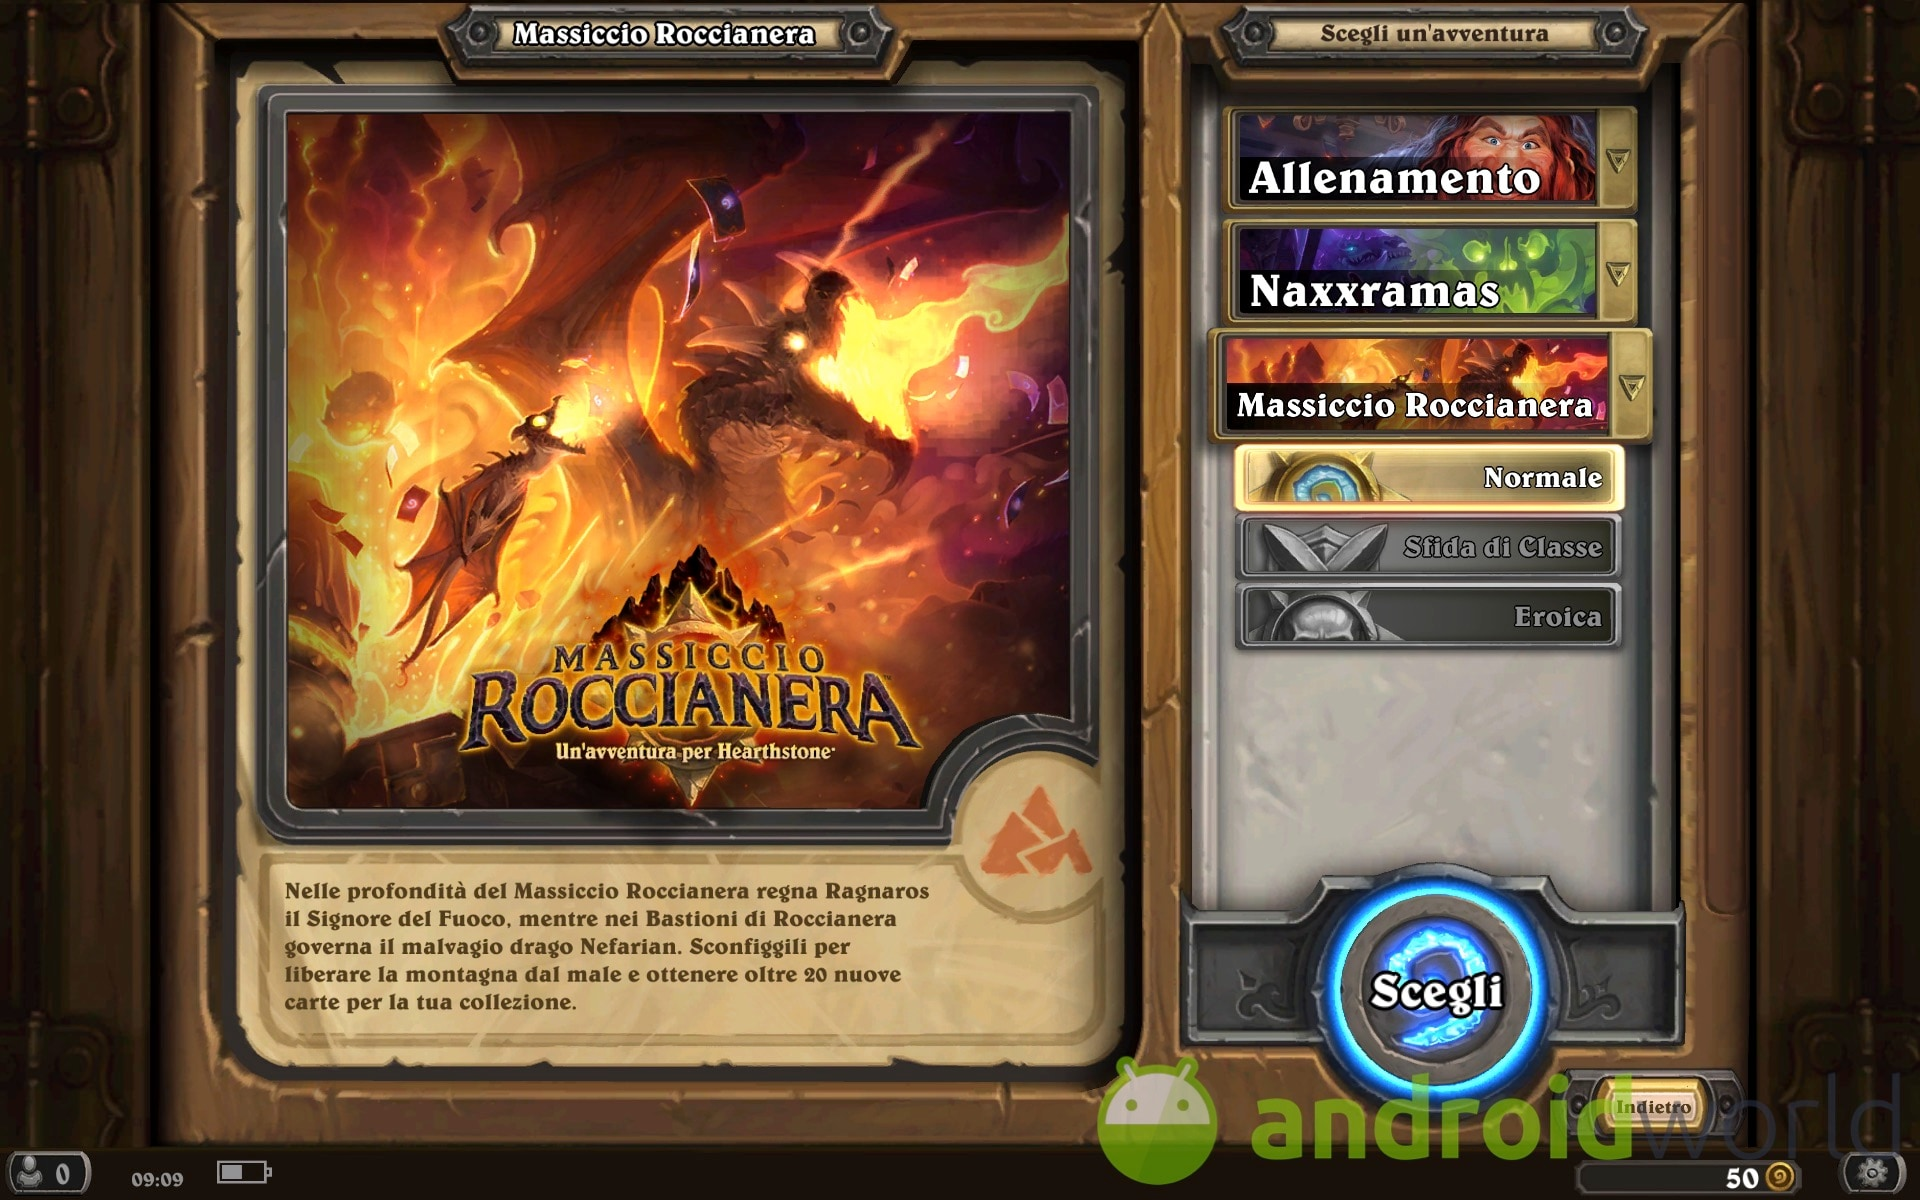 Hearthstone Massiccio Roccianera Sample – 4